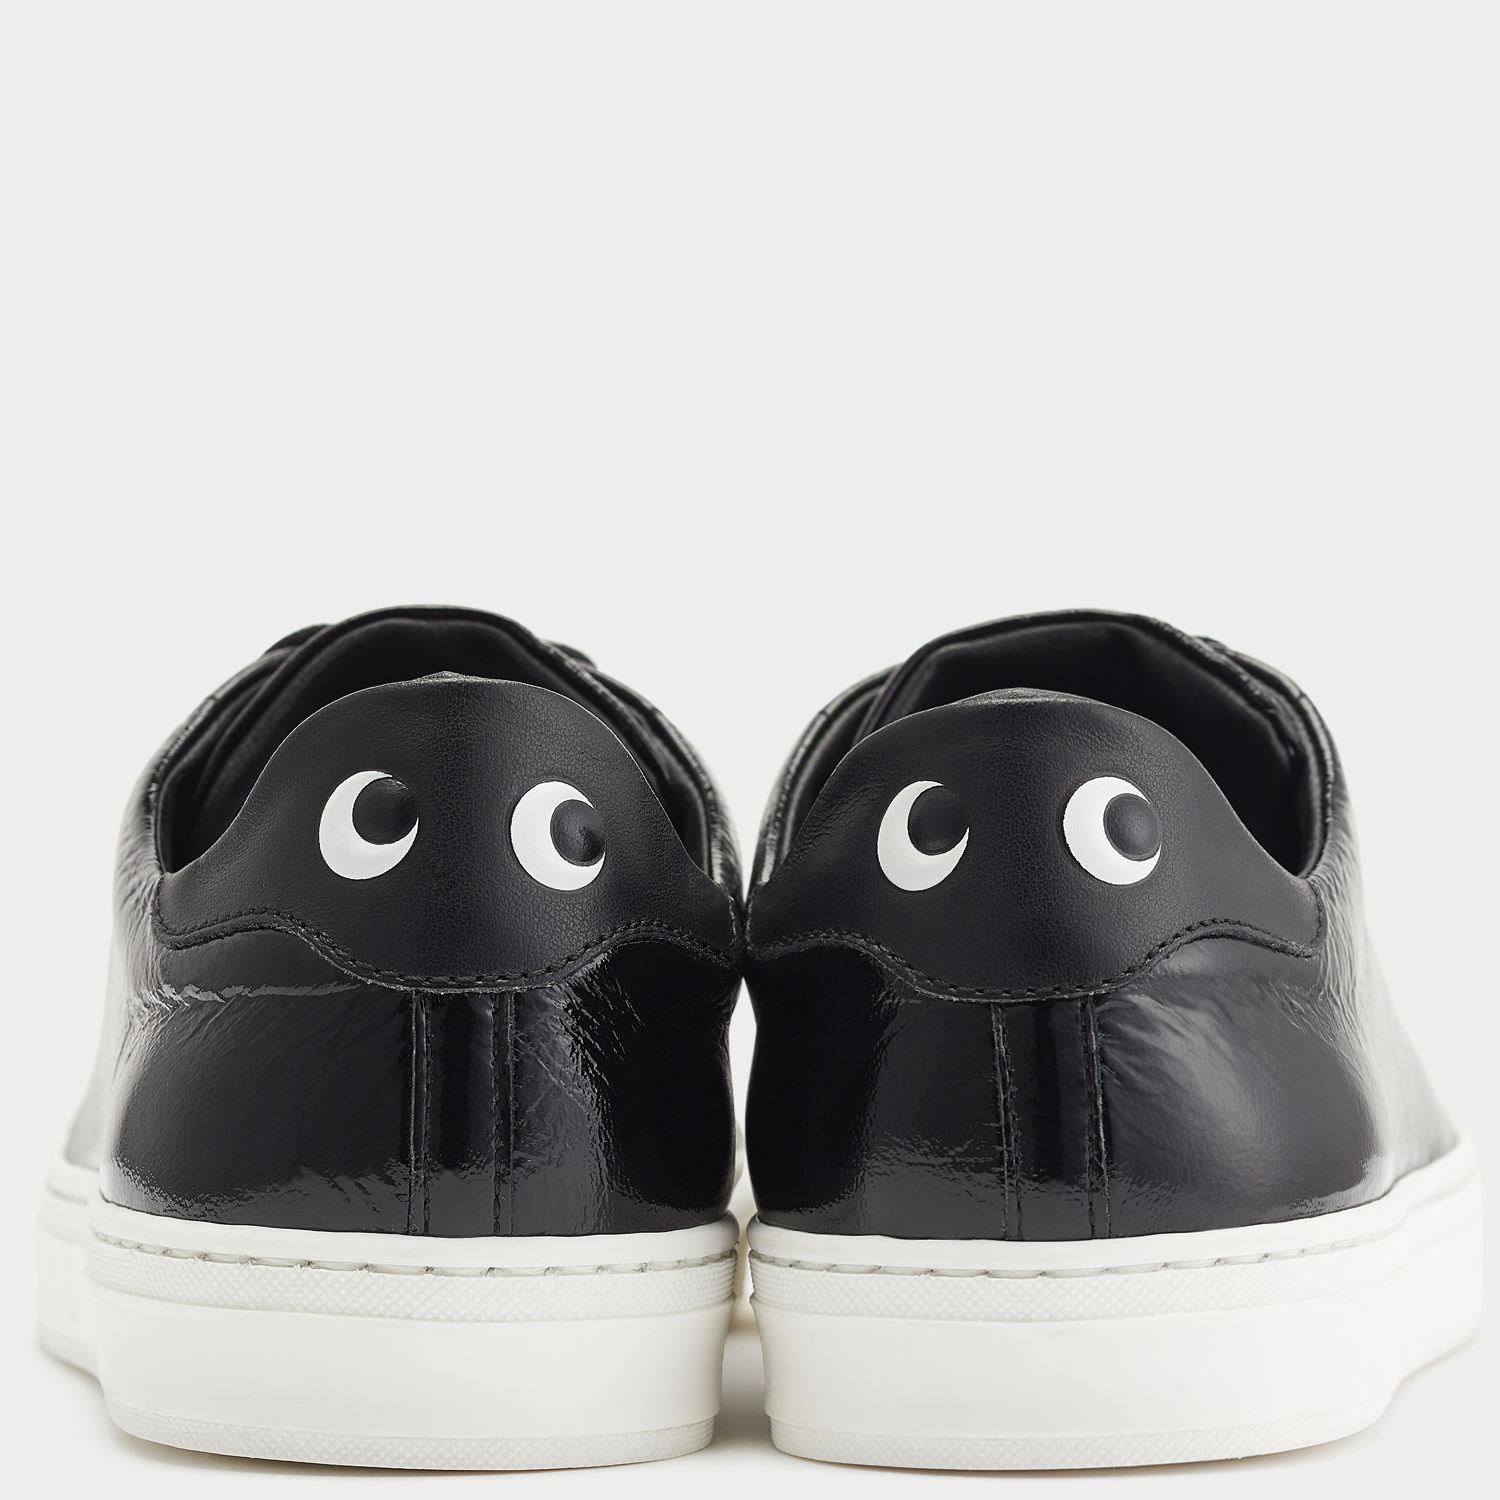 daf46a5b7fd002 Anya Hindmarch Eyes Sneakers in Black - Lyst